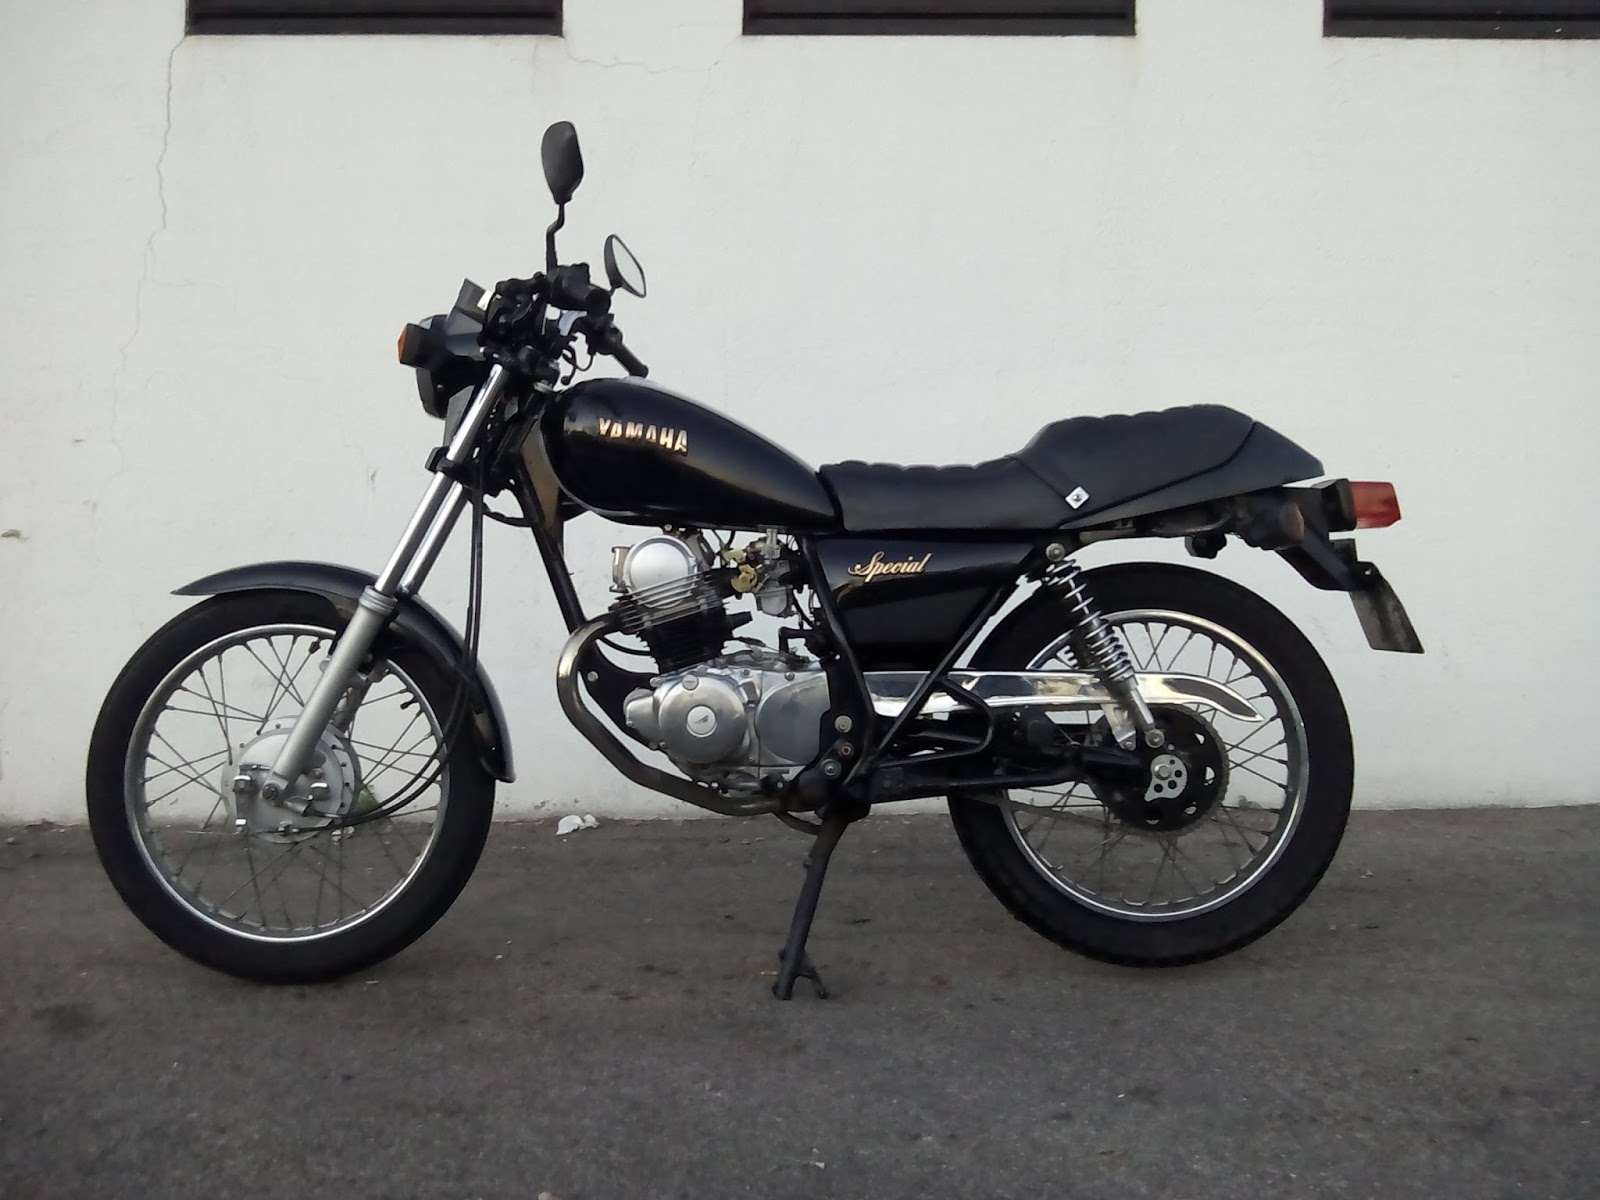 1991 yamaha sr 125 pics specs and information. Black Bedroom Furniture Sets. Home Design Ideas